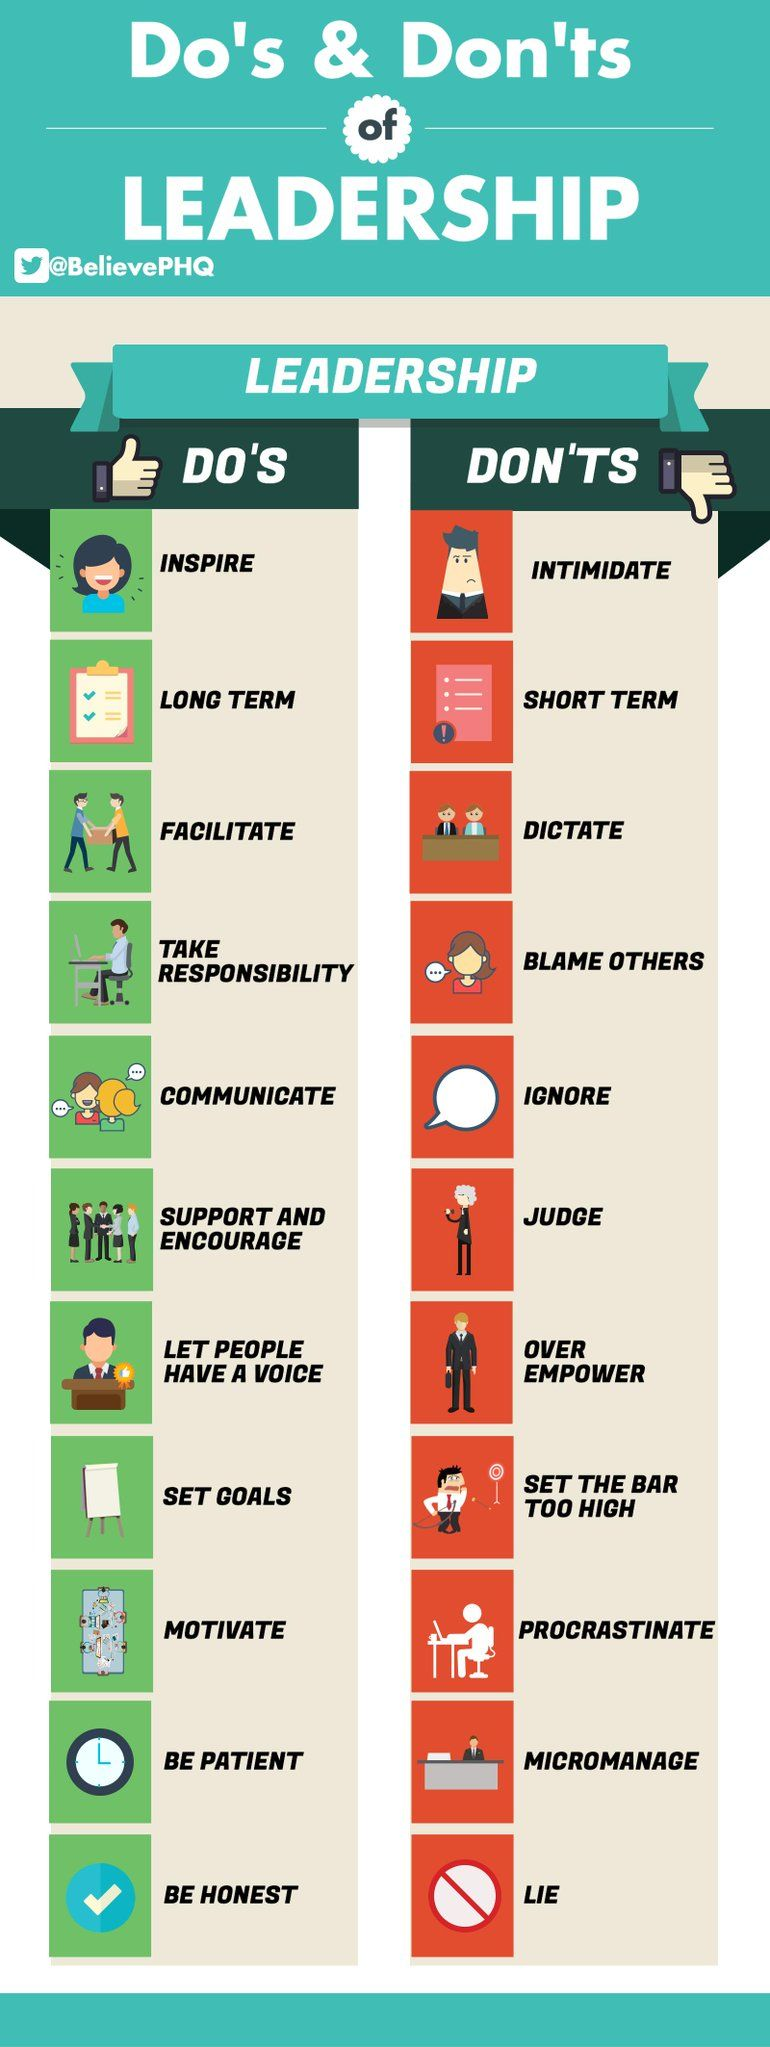 """BelievePerform on Twitter: """"Do's and Don'ts of Leadership https://t.co/YANthcTQky"""""""